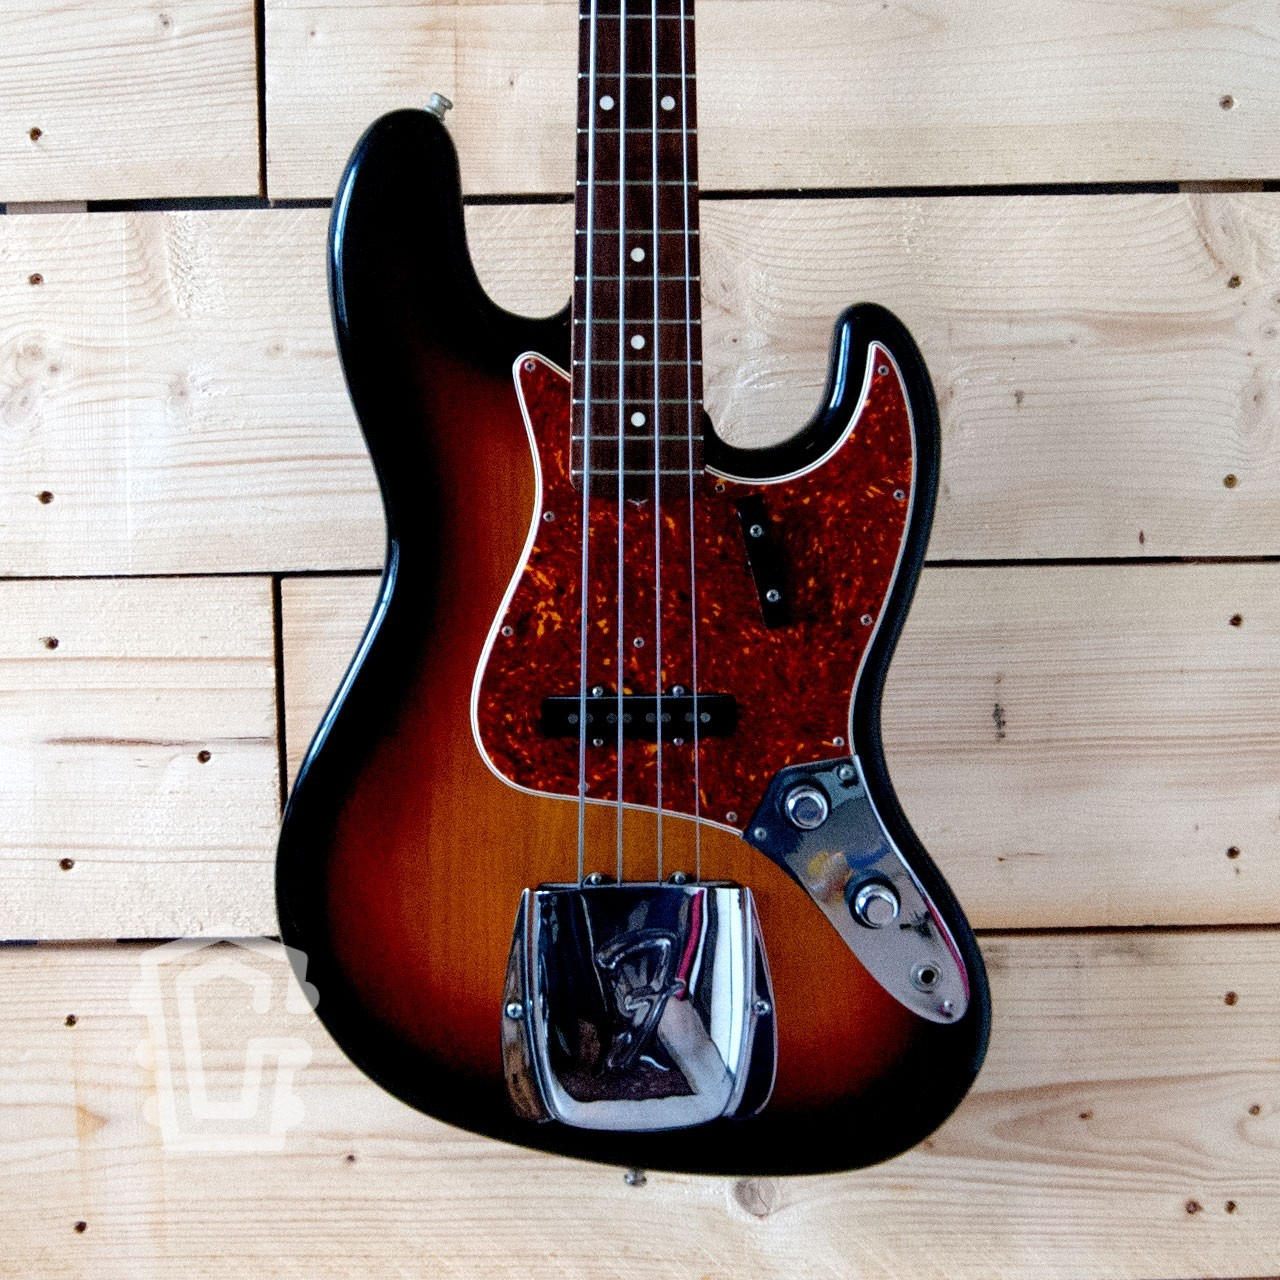 Fender Jazz Bass '62 reissue